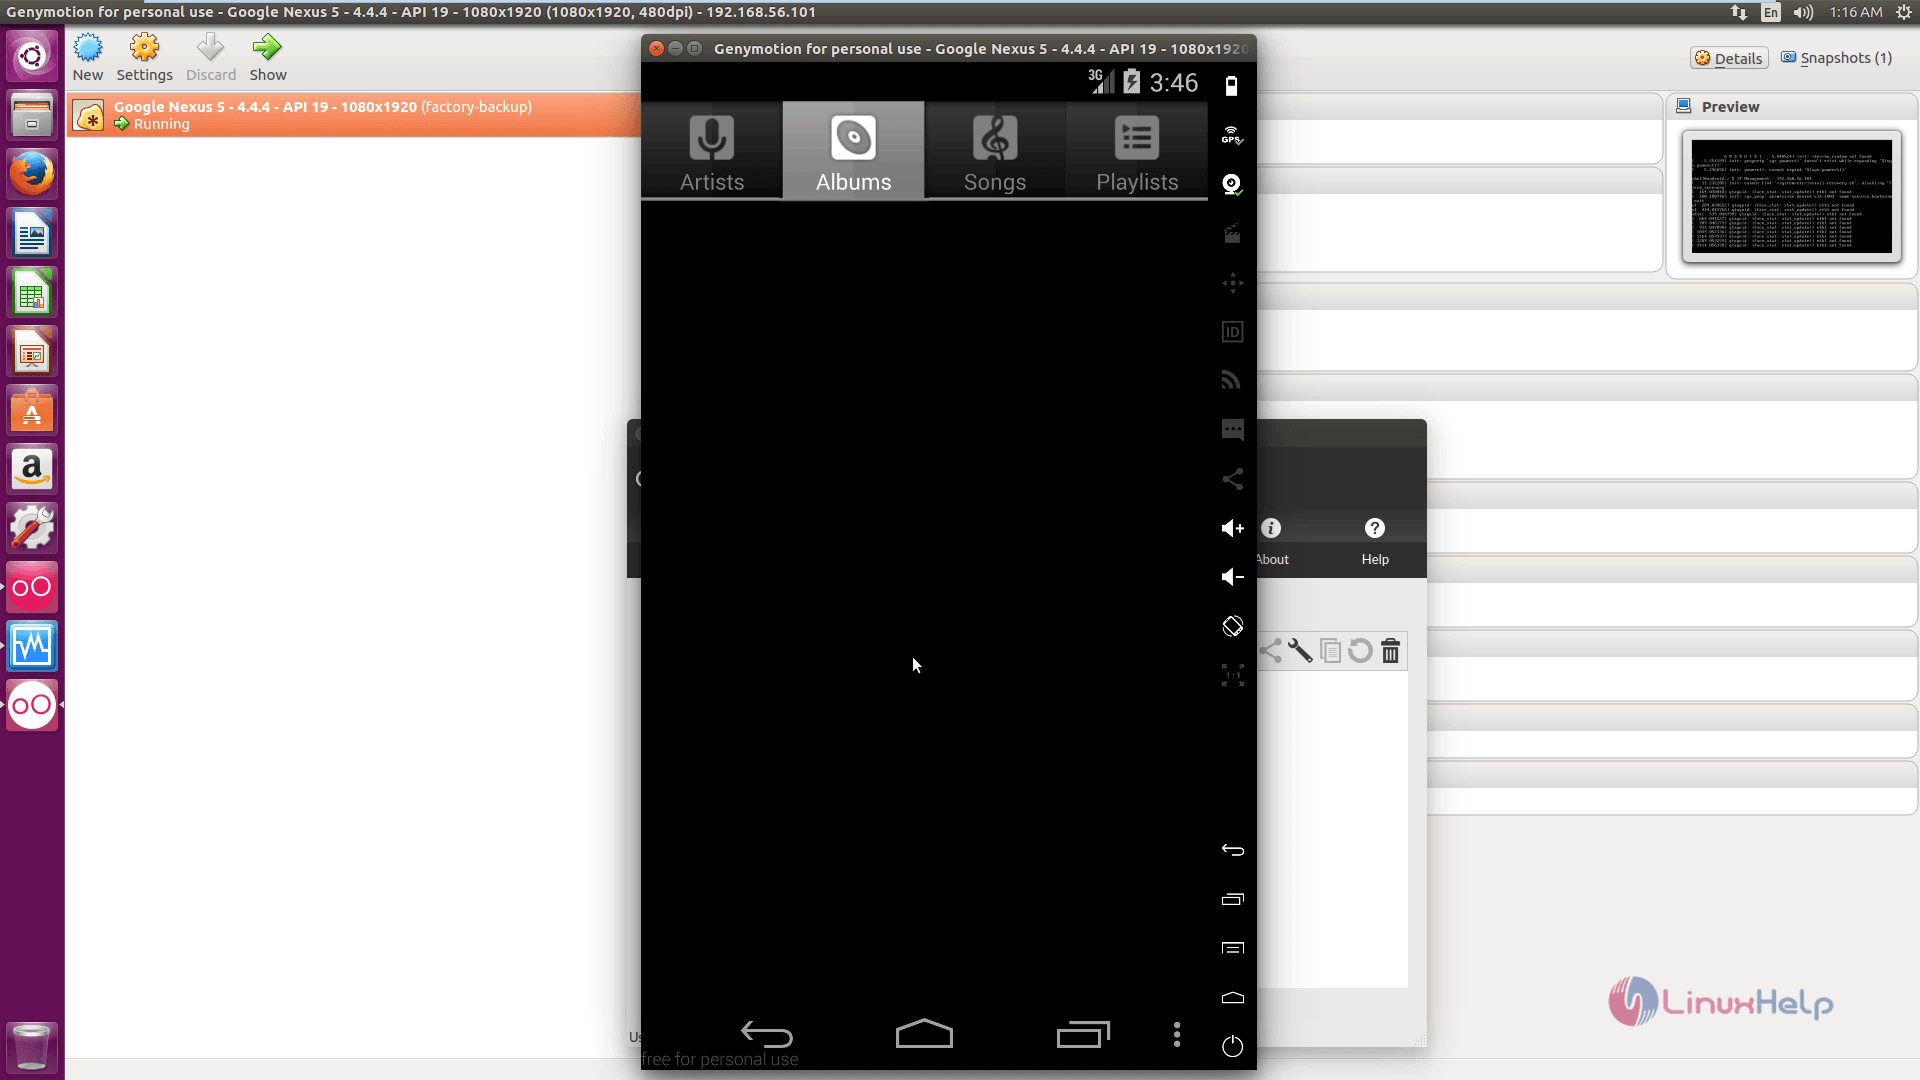 How to run Android Apps in Ubuntu - Genymotion Emulator   LinuxHelp